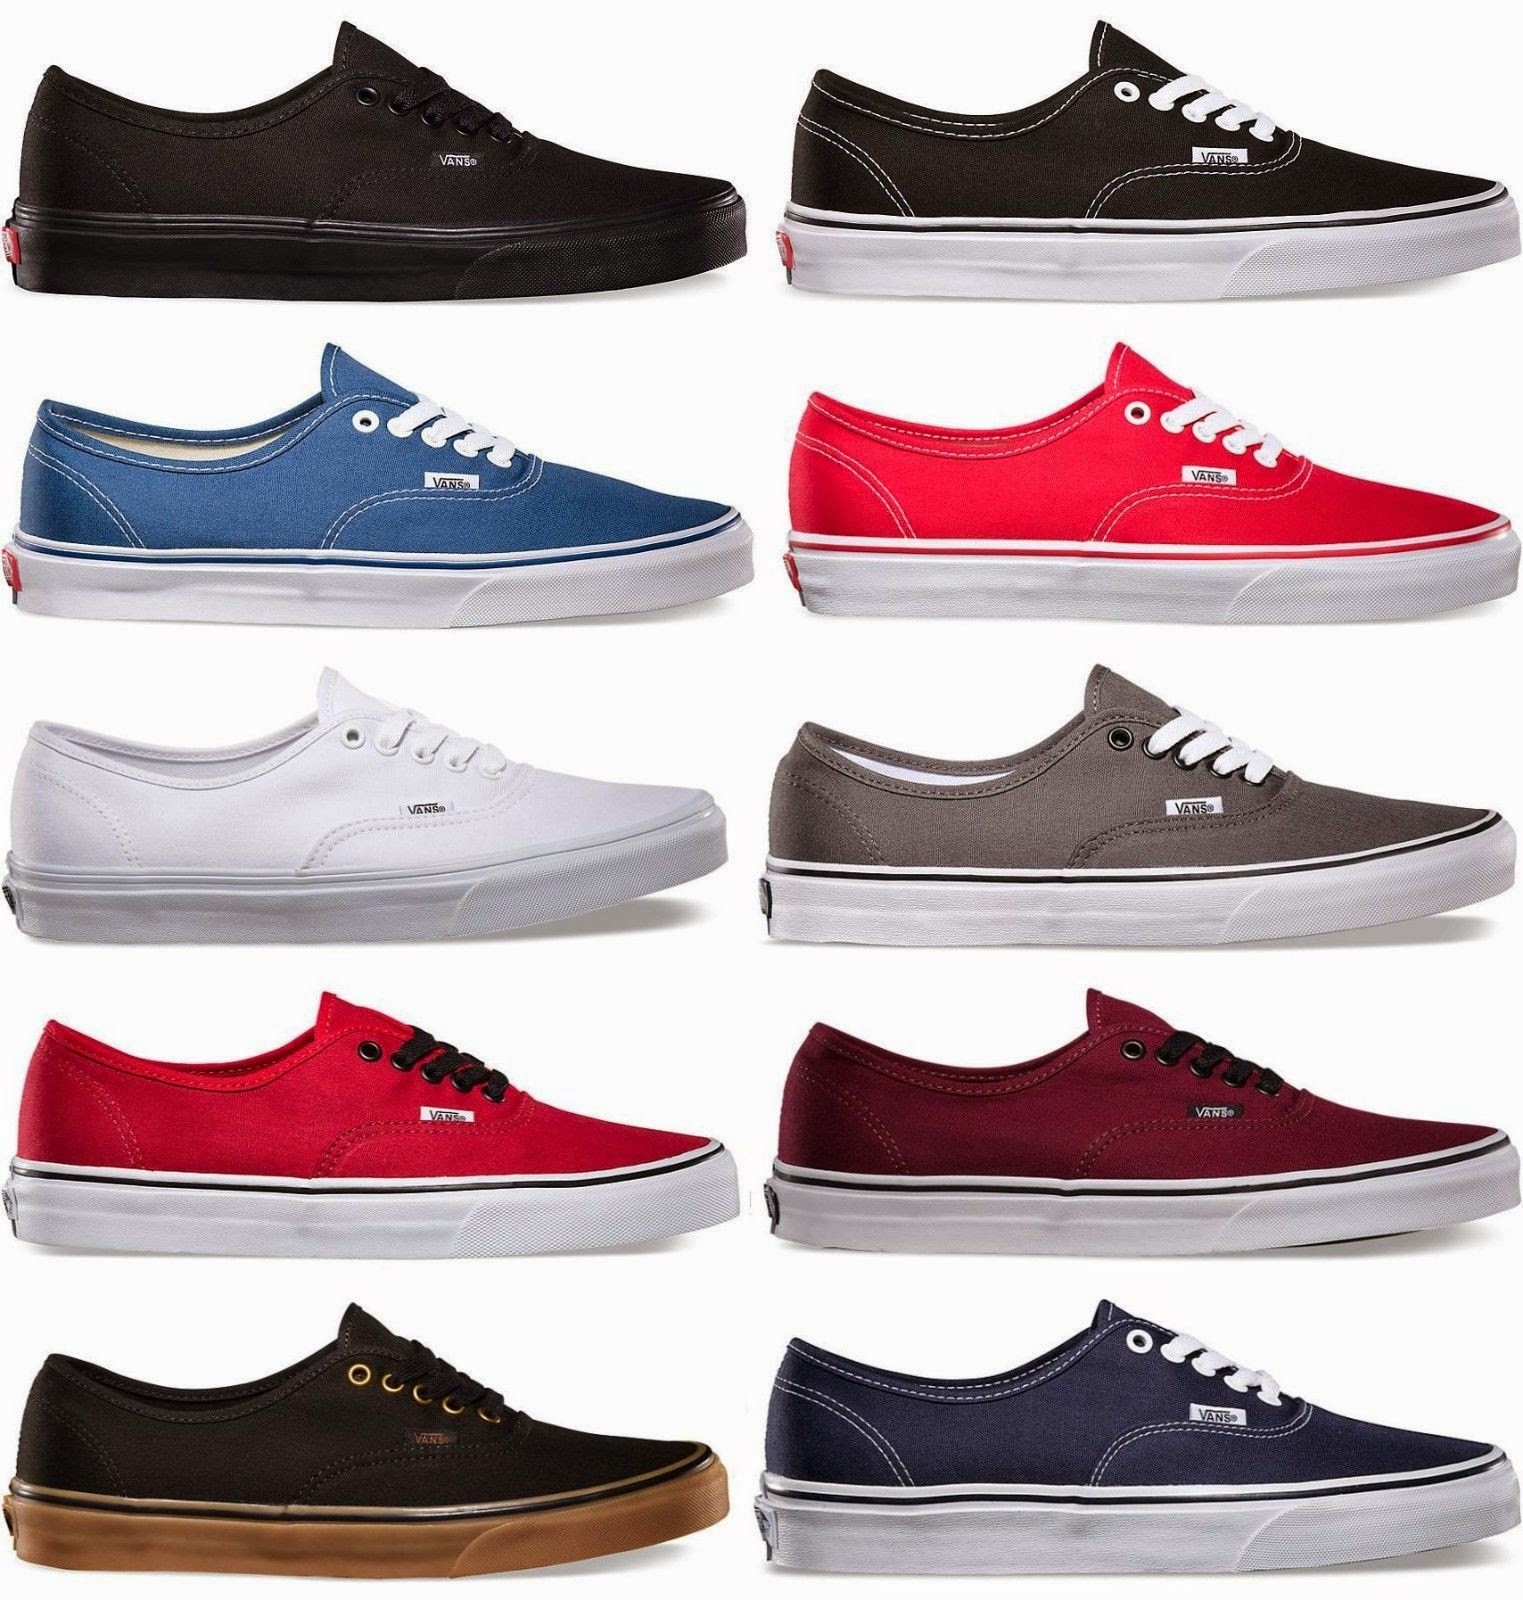 79f44fe39d Buy 2 OFF ANY vans store philippines CASE AND GET 70% OFF!